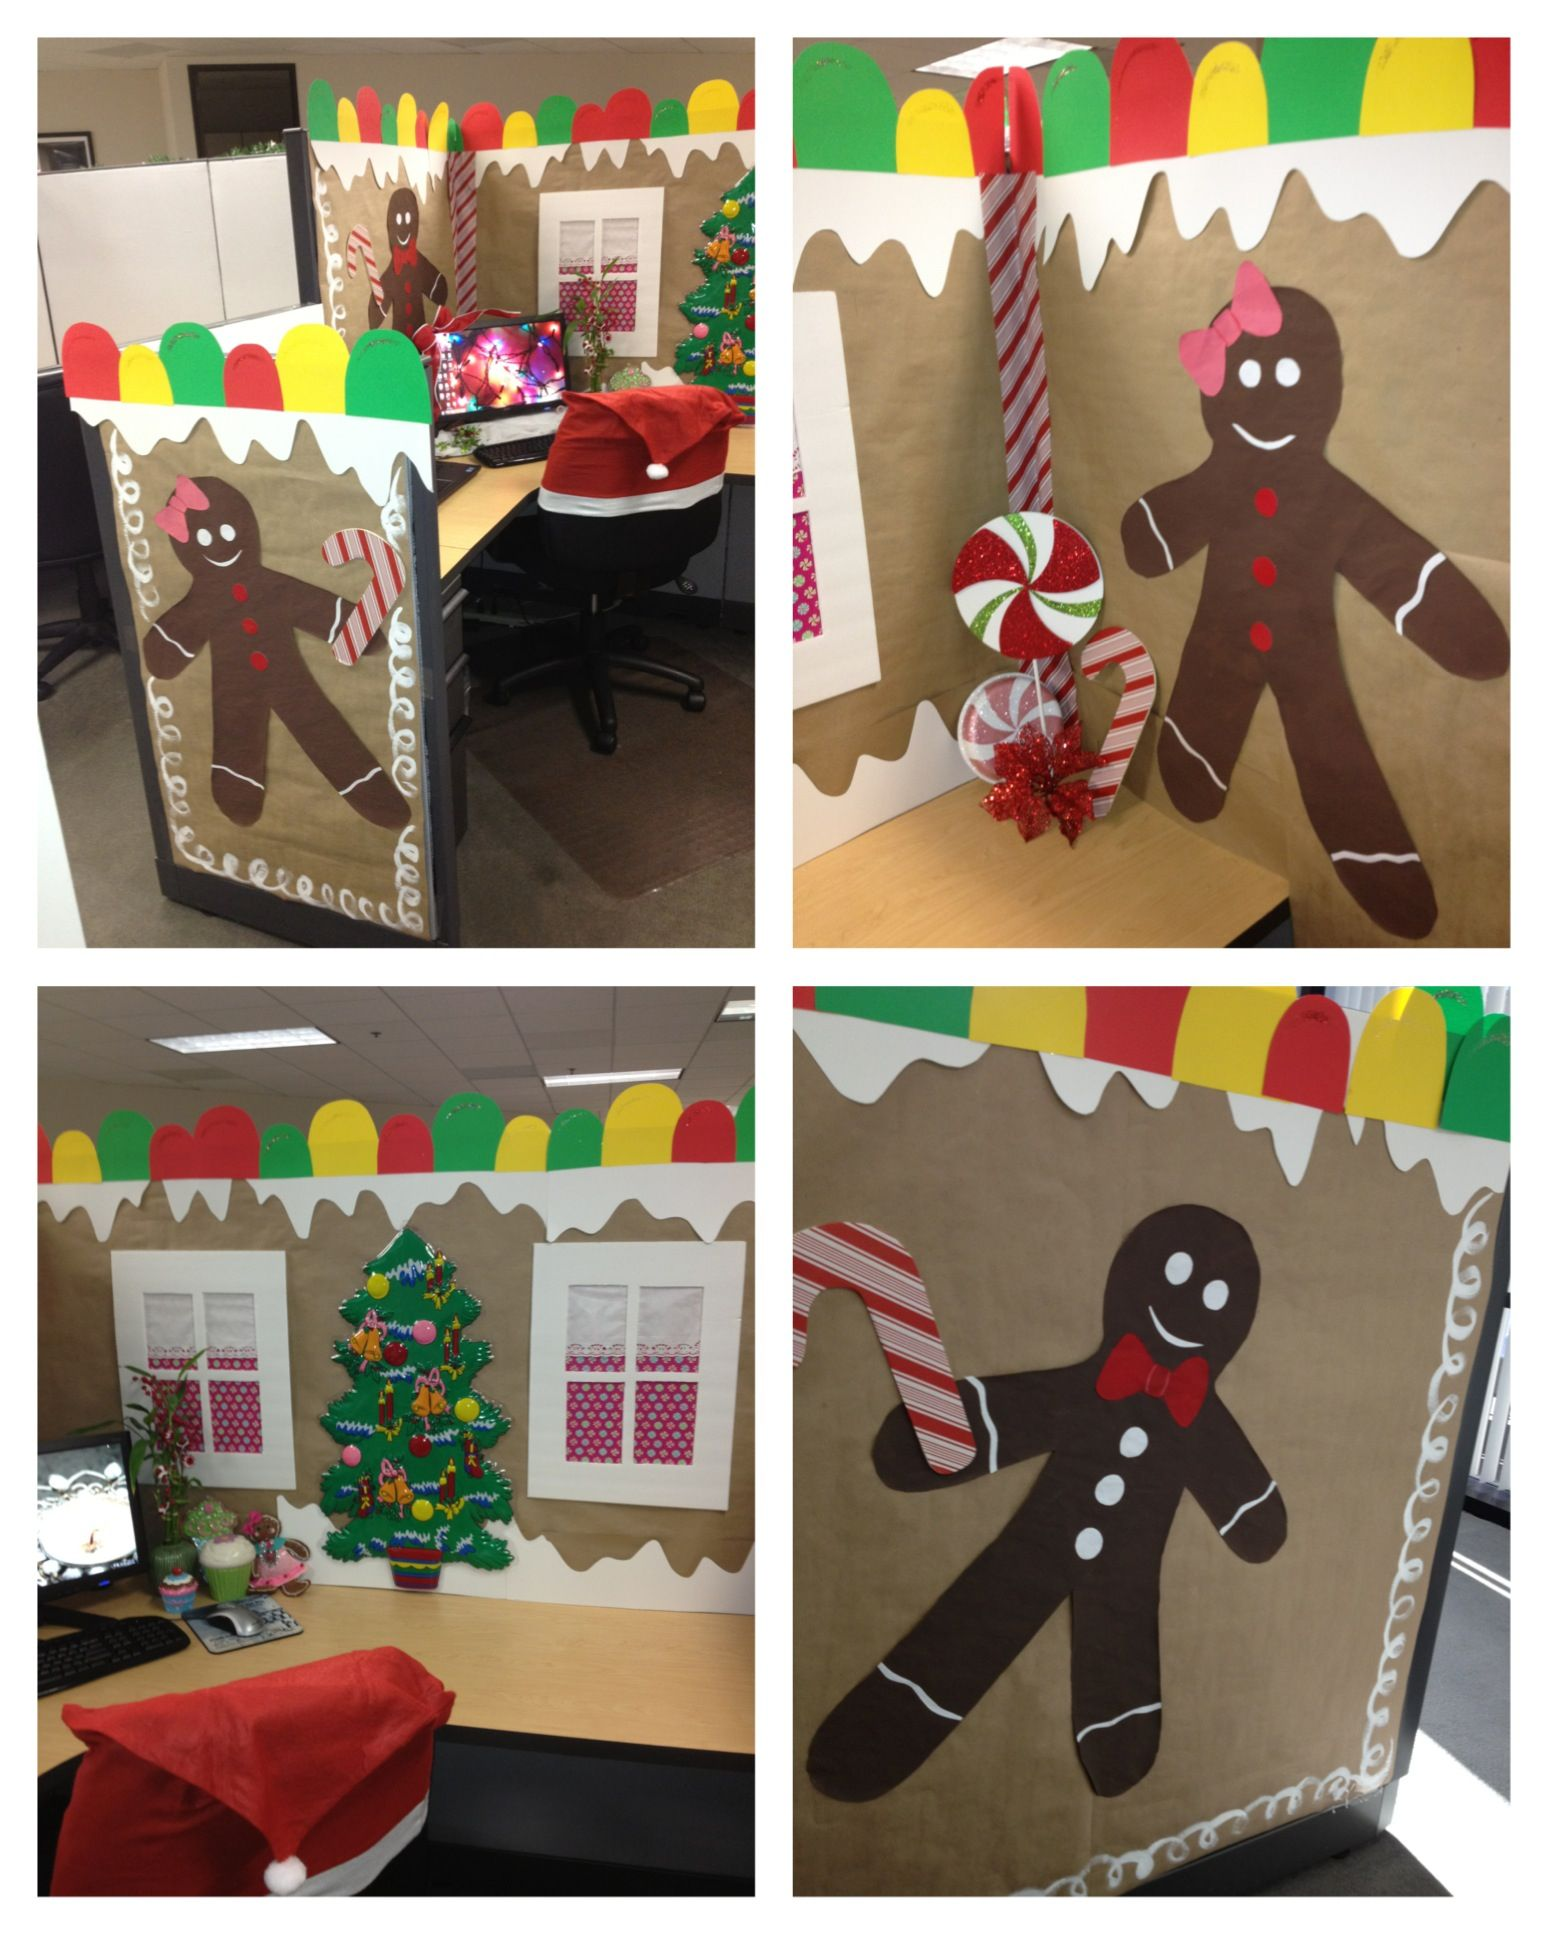 Wondrous A Cute Ginger Bread Man House In The House Get It Ideas For The Inspirational Interior Design Netriciaus